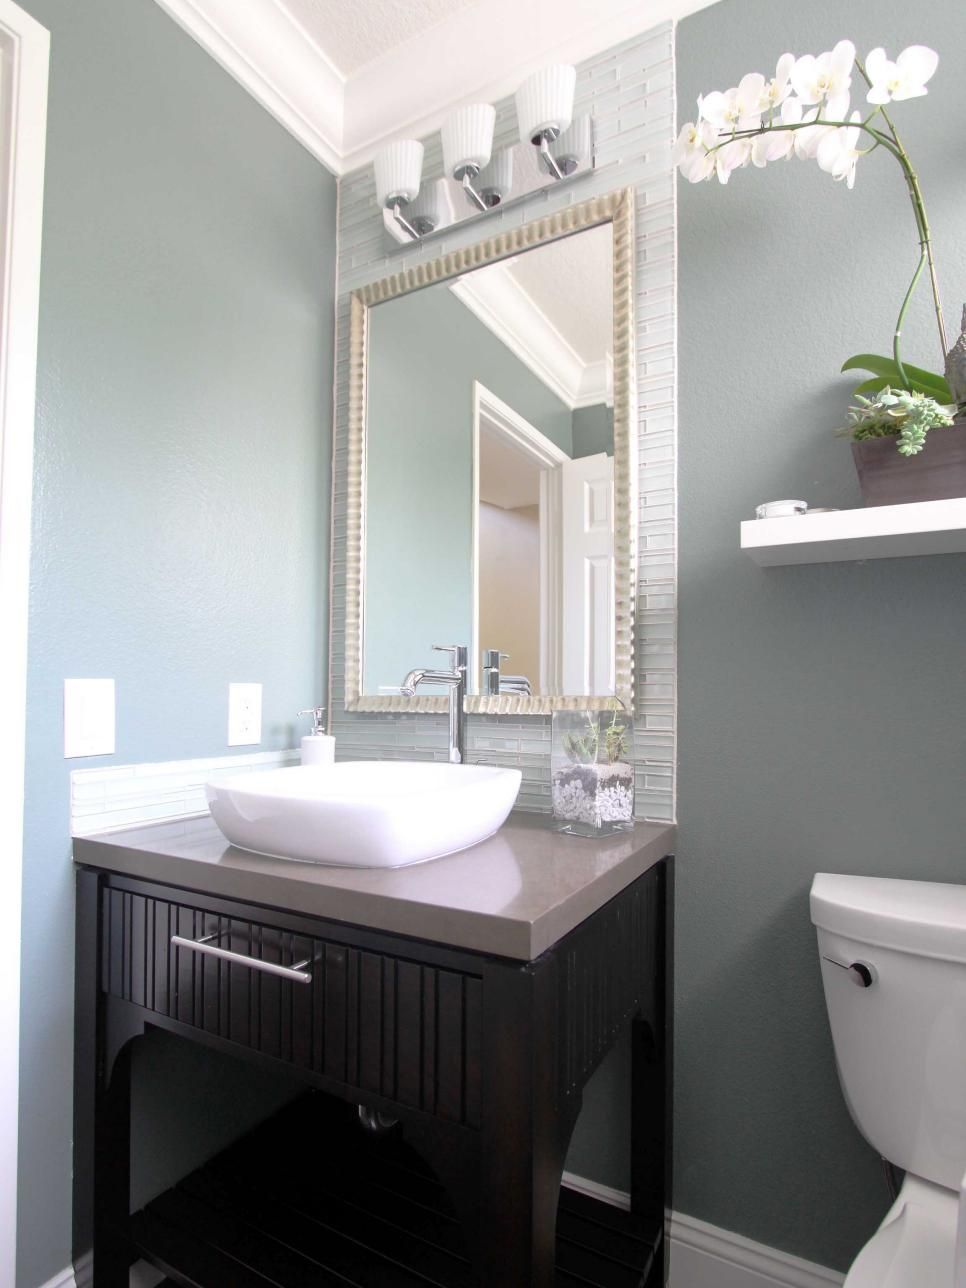 In this soothing blue gray and white contemporary bathroom small details add visual texture also